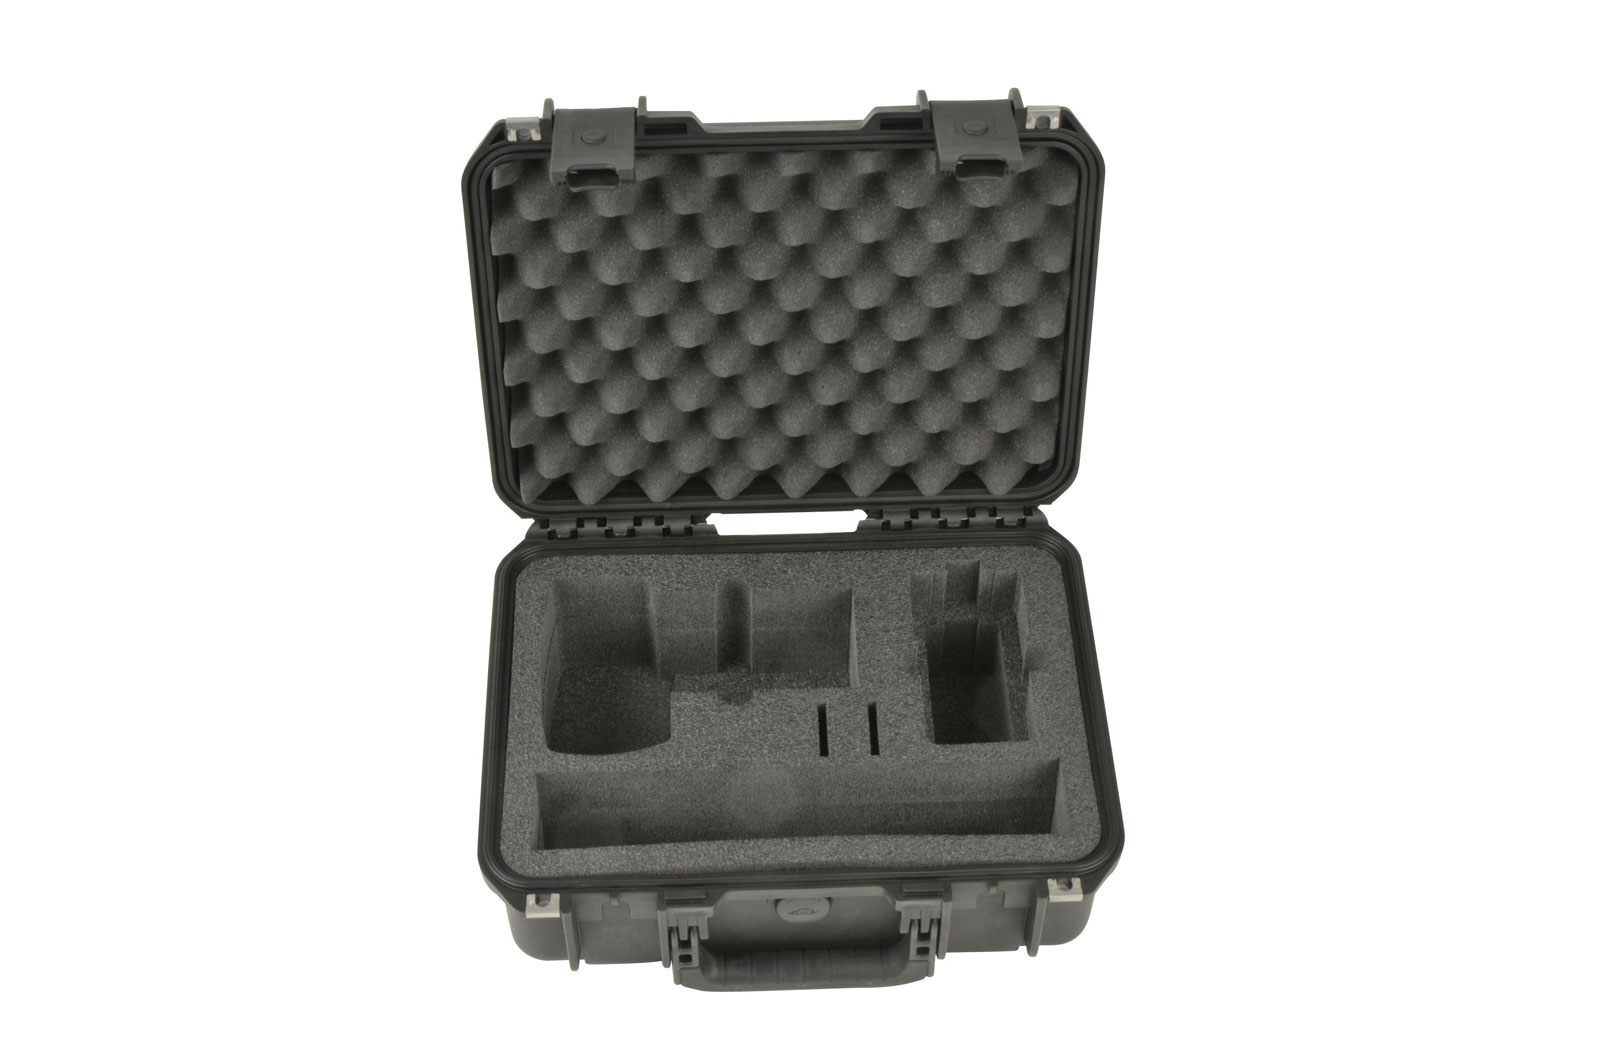 MUSIC PHOTO & VIDEO PHOTO CASES 3I-1510H6SLR BLACK